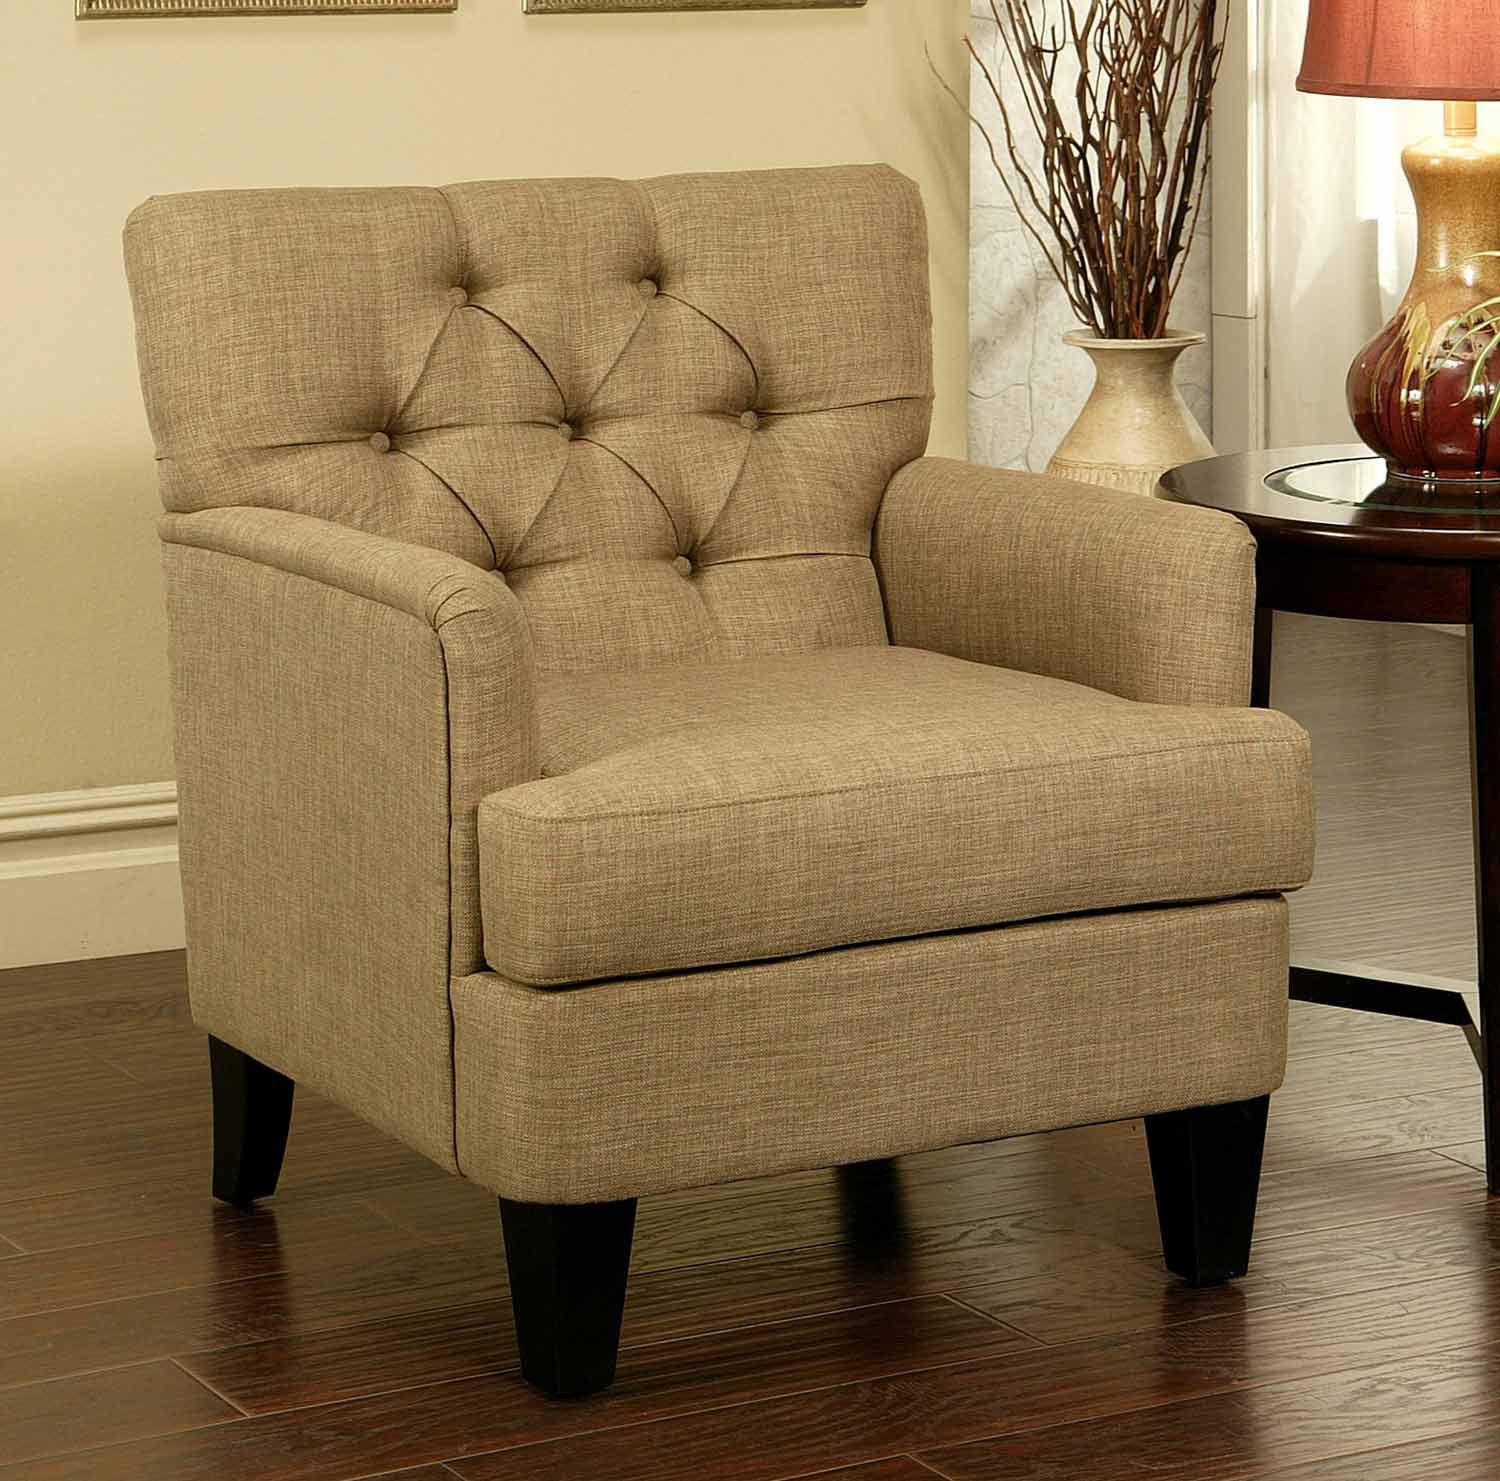 Abbyson Living Freemont Tufted Fabric Club Chair